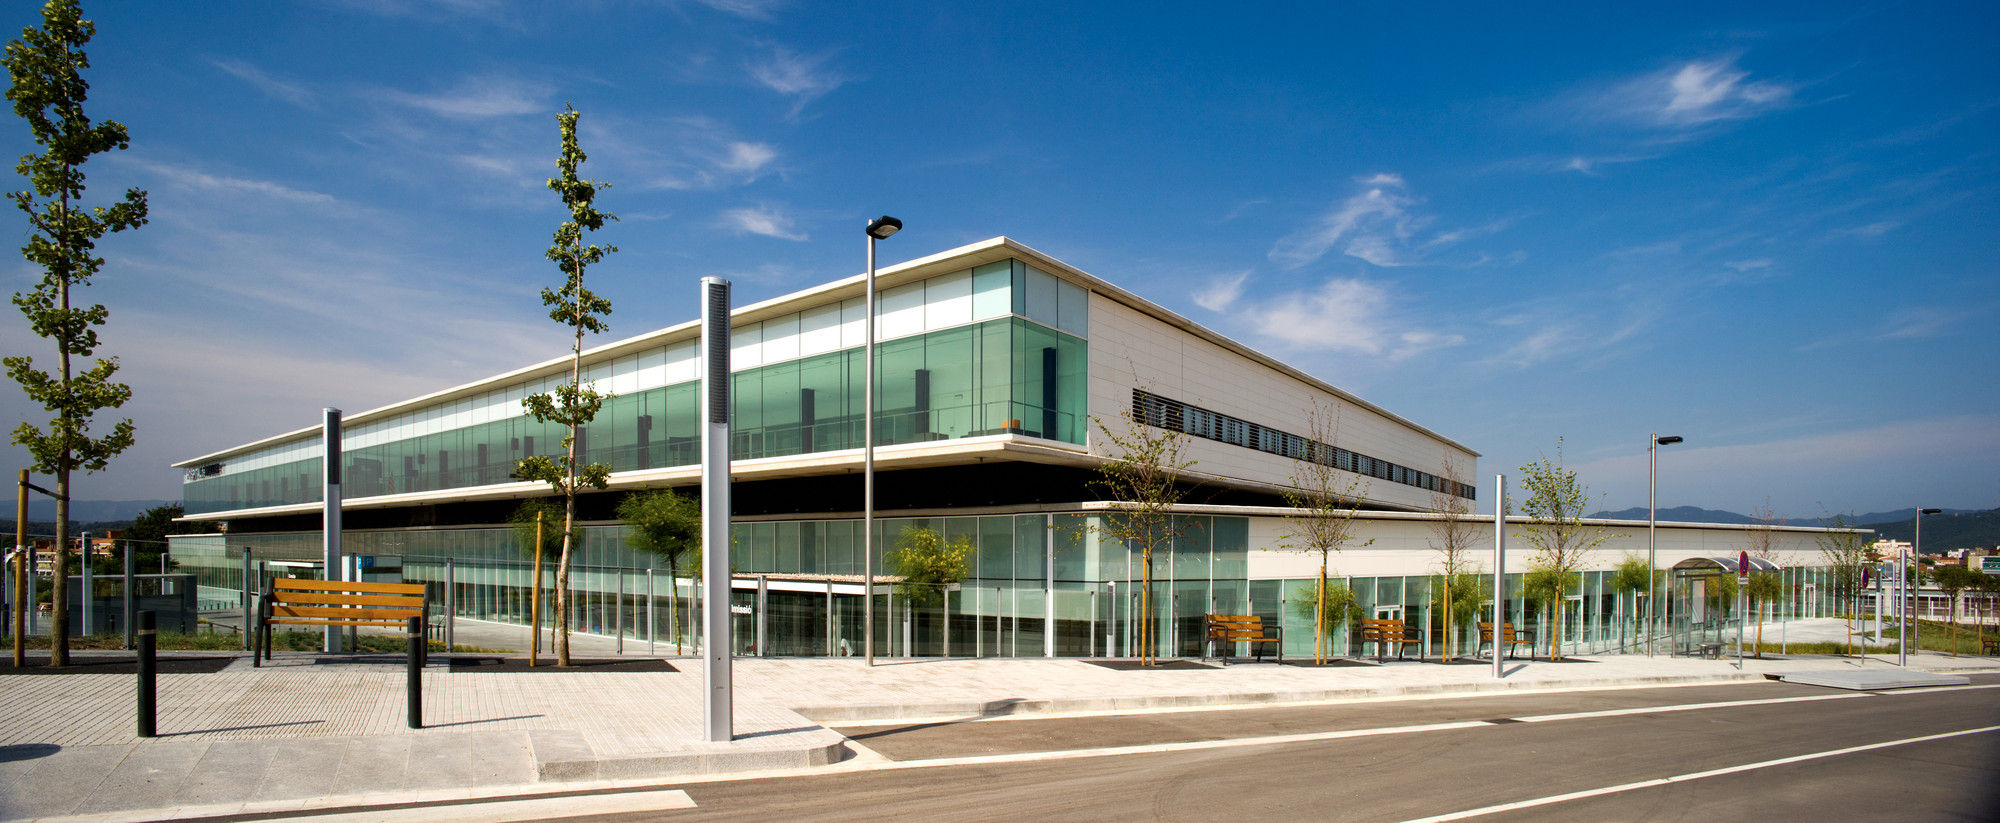 Hospital of Mollet / Corea Moran Arquitectura | ArchDaily